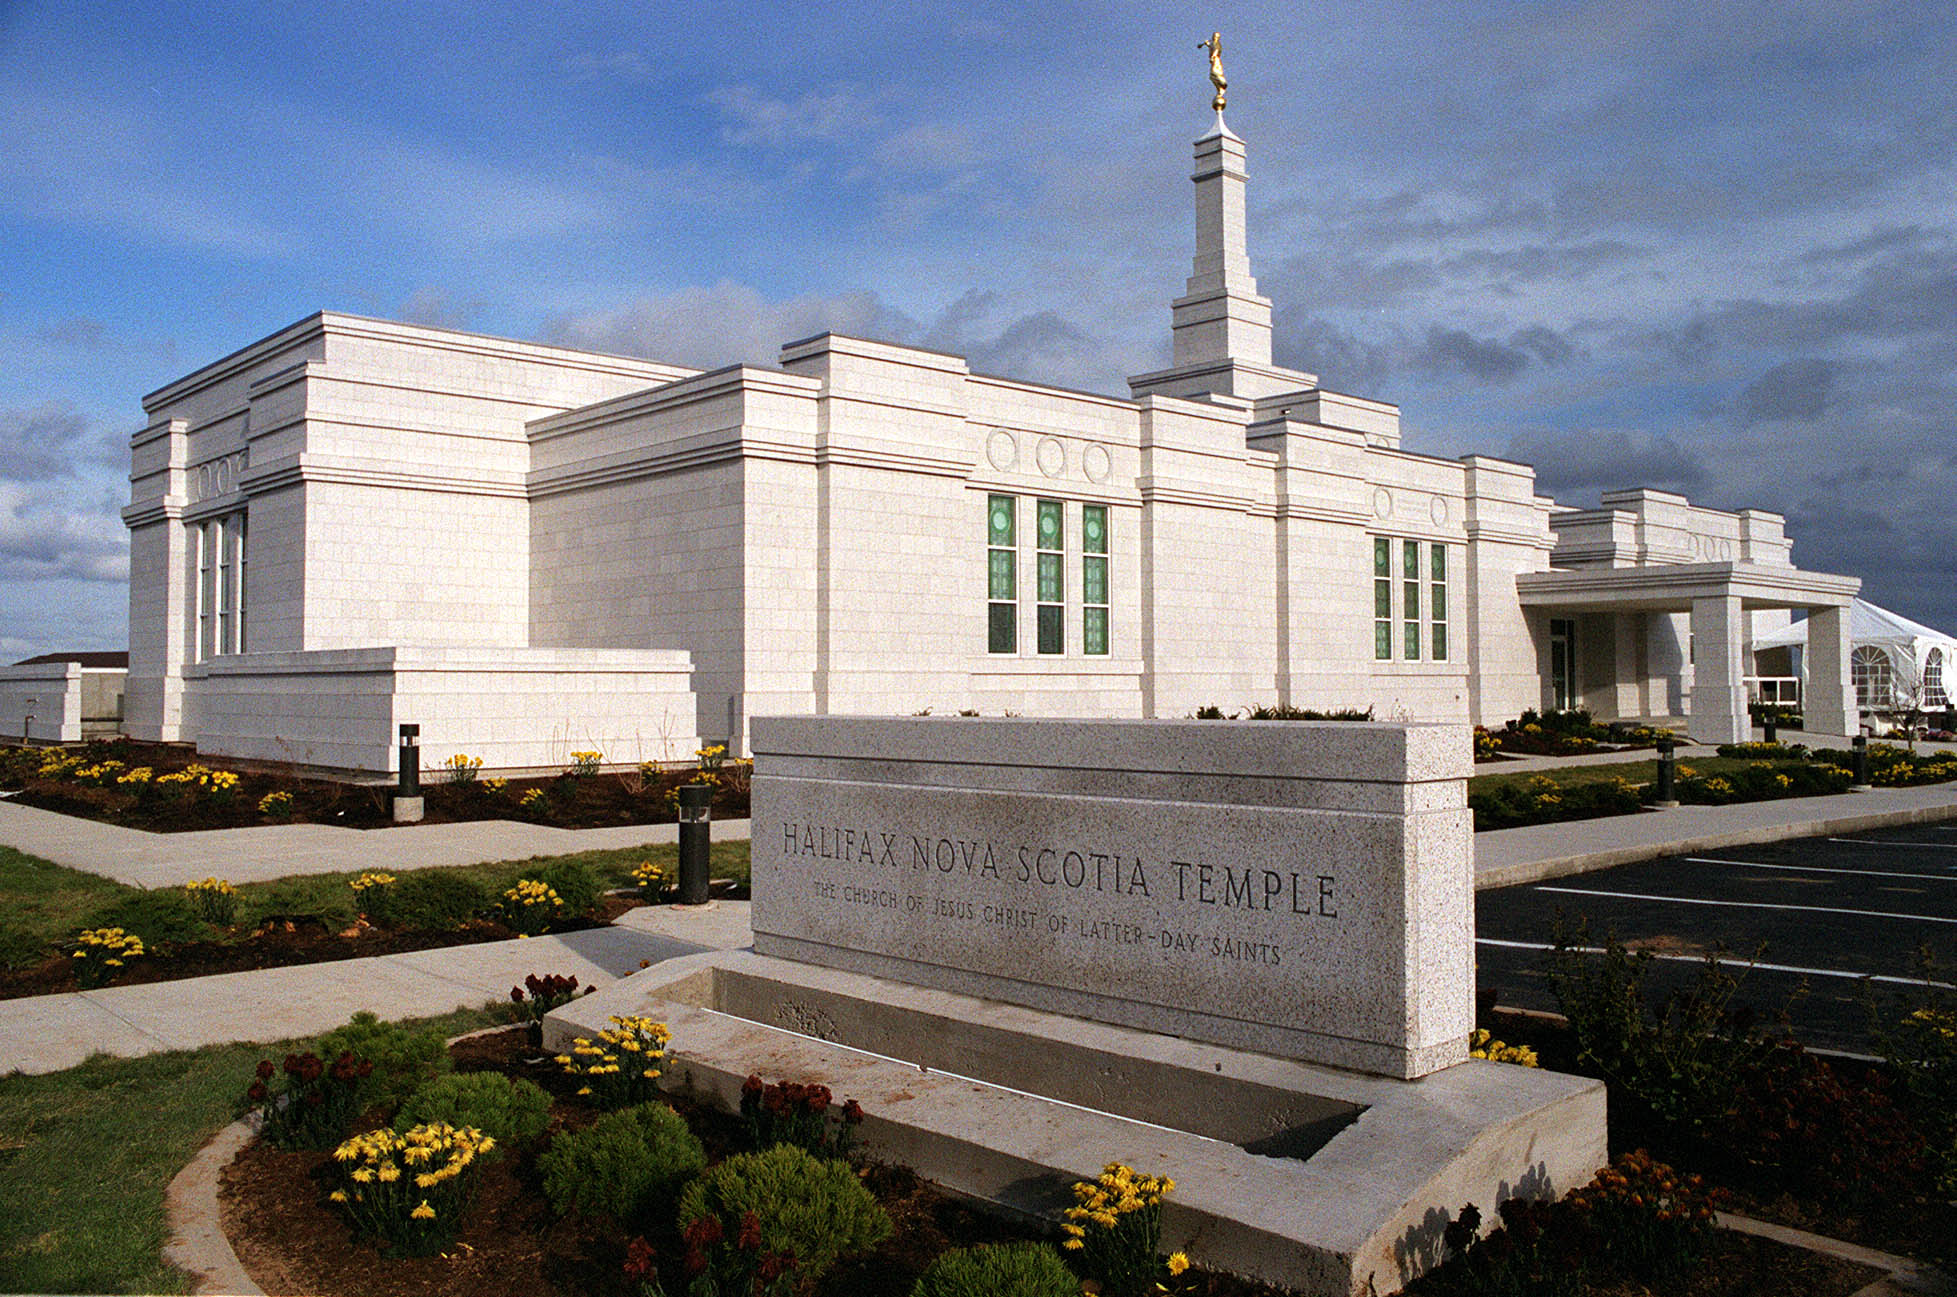 Halifax Nova Scotia Temple